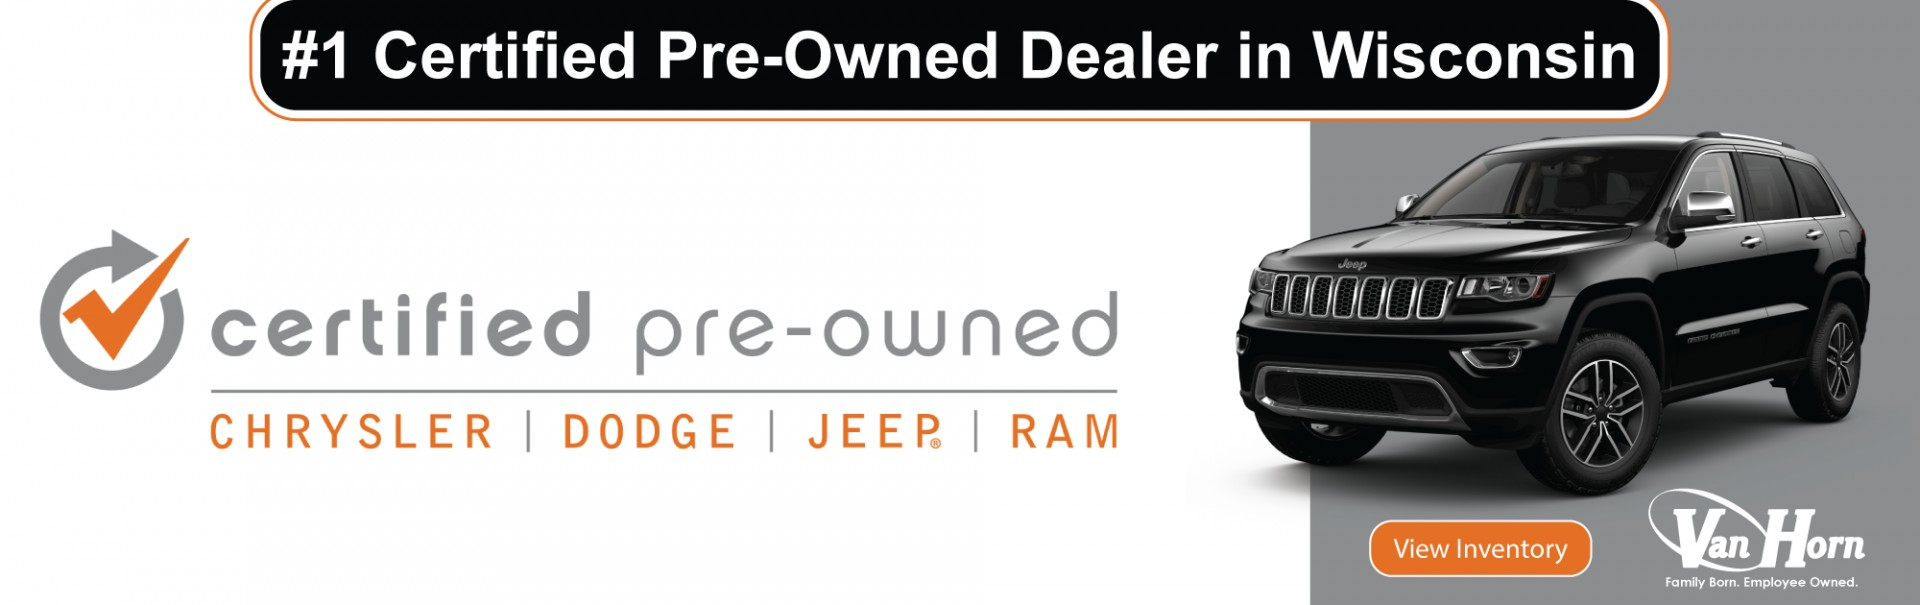 #1 Certified Pre-Owned Dealer in Wisconsin